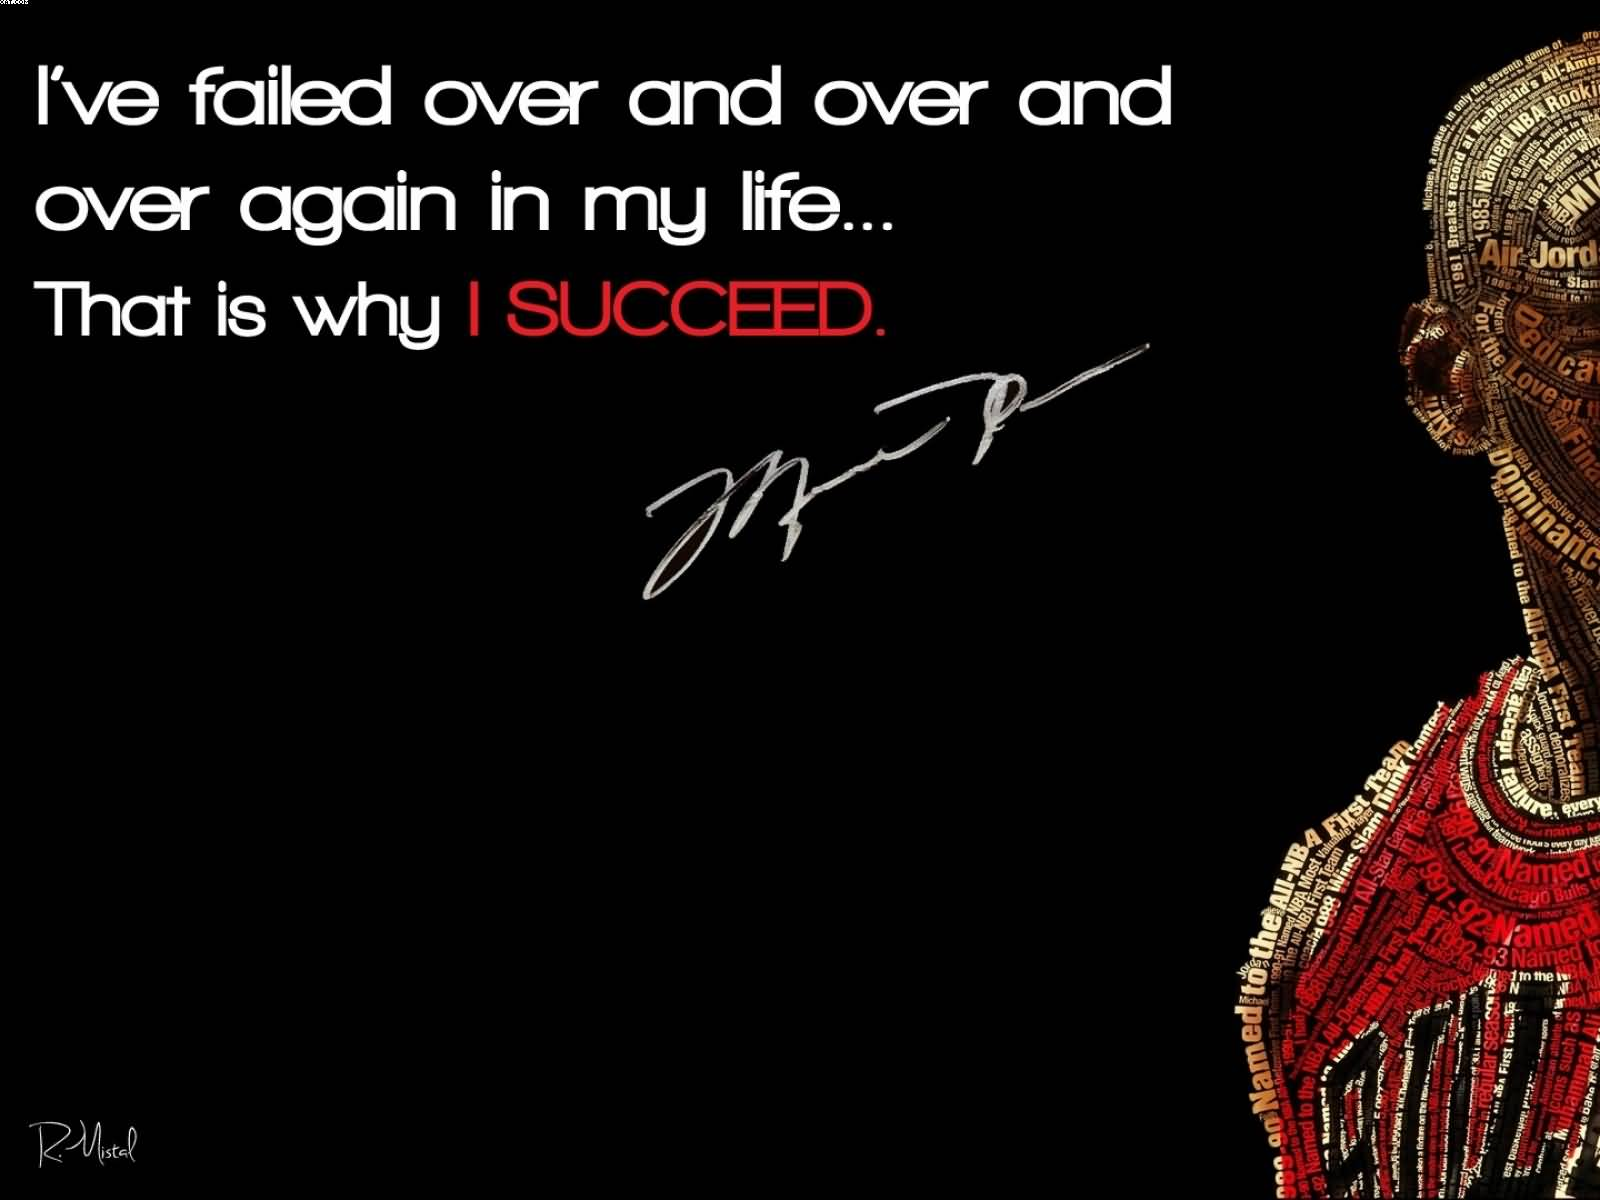 I've Failed Over And Over And Over Afain in my life.. That is why i succeed. - Cheating Quotes